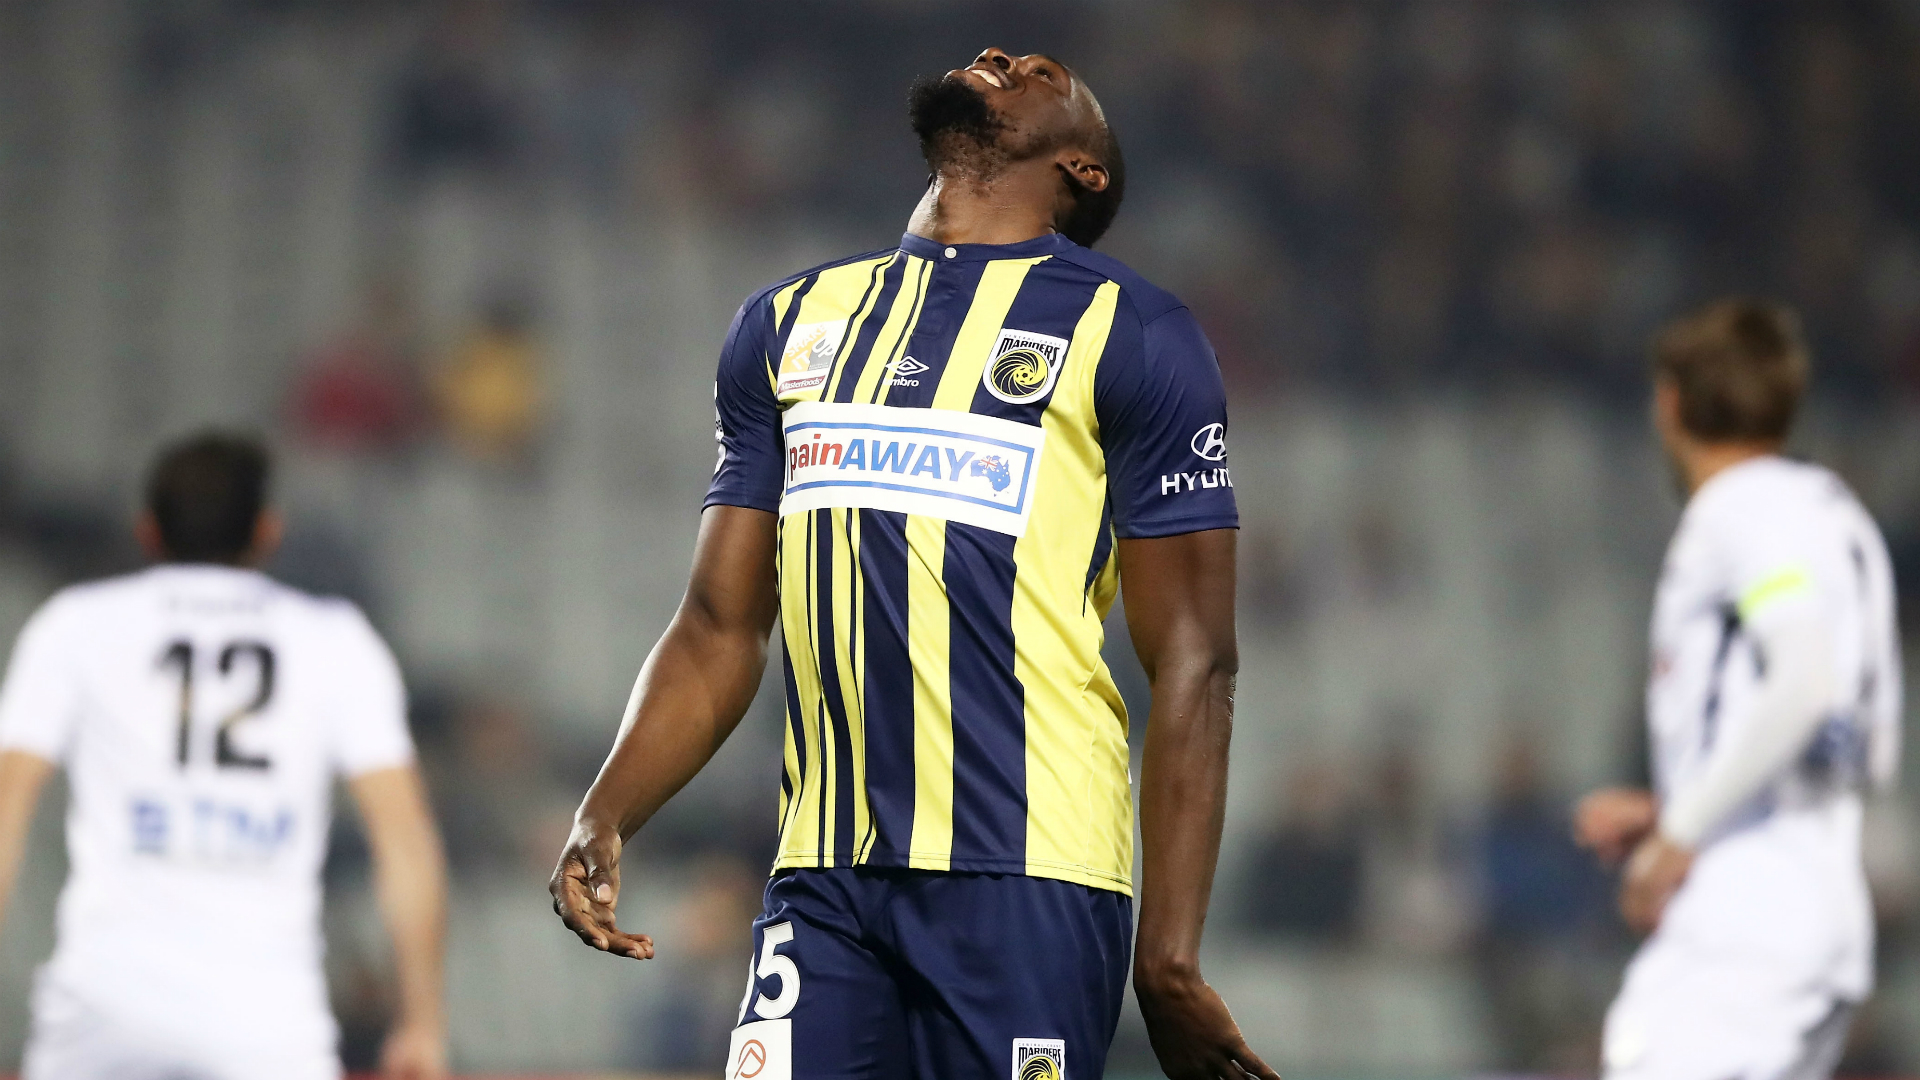 Usain Bolt offered contract with Maltese club